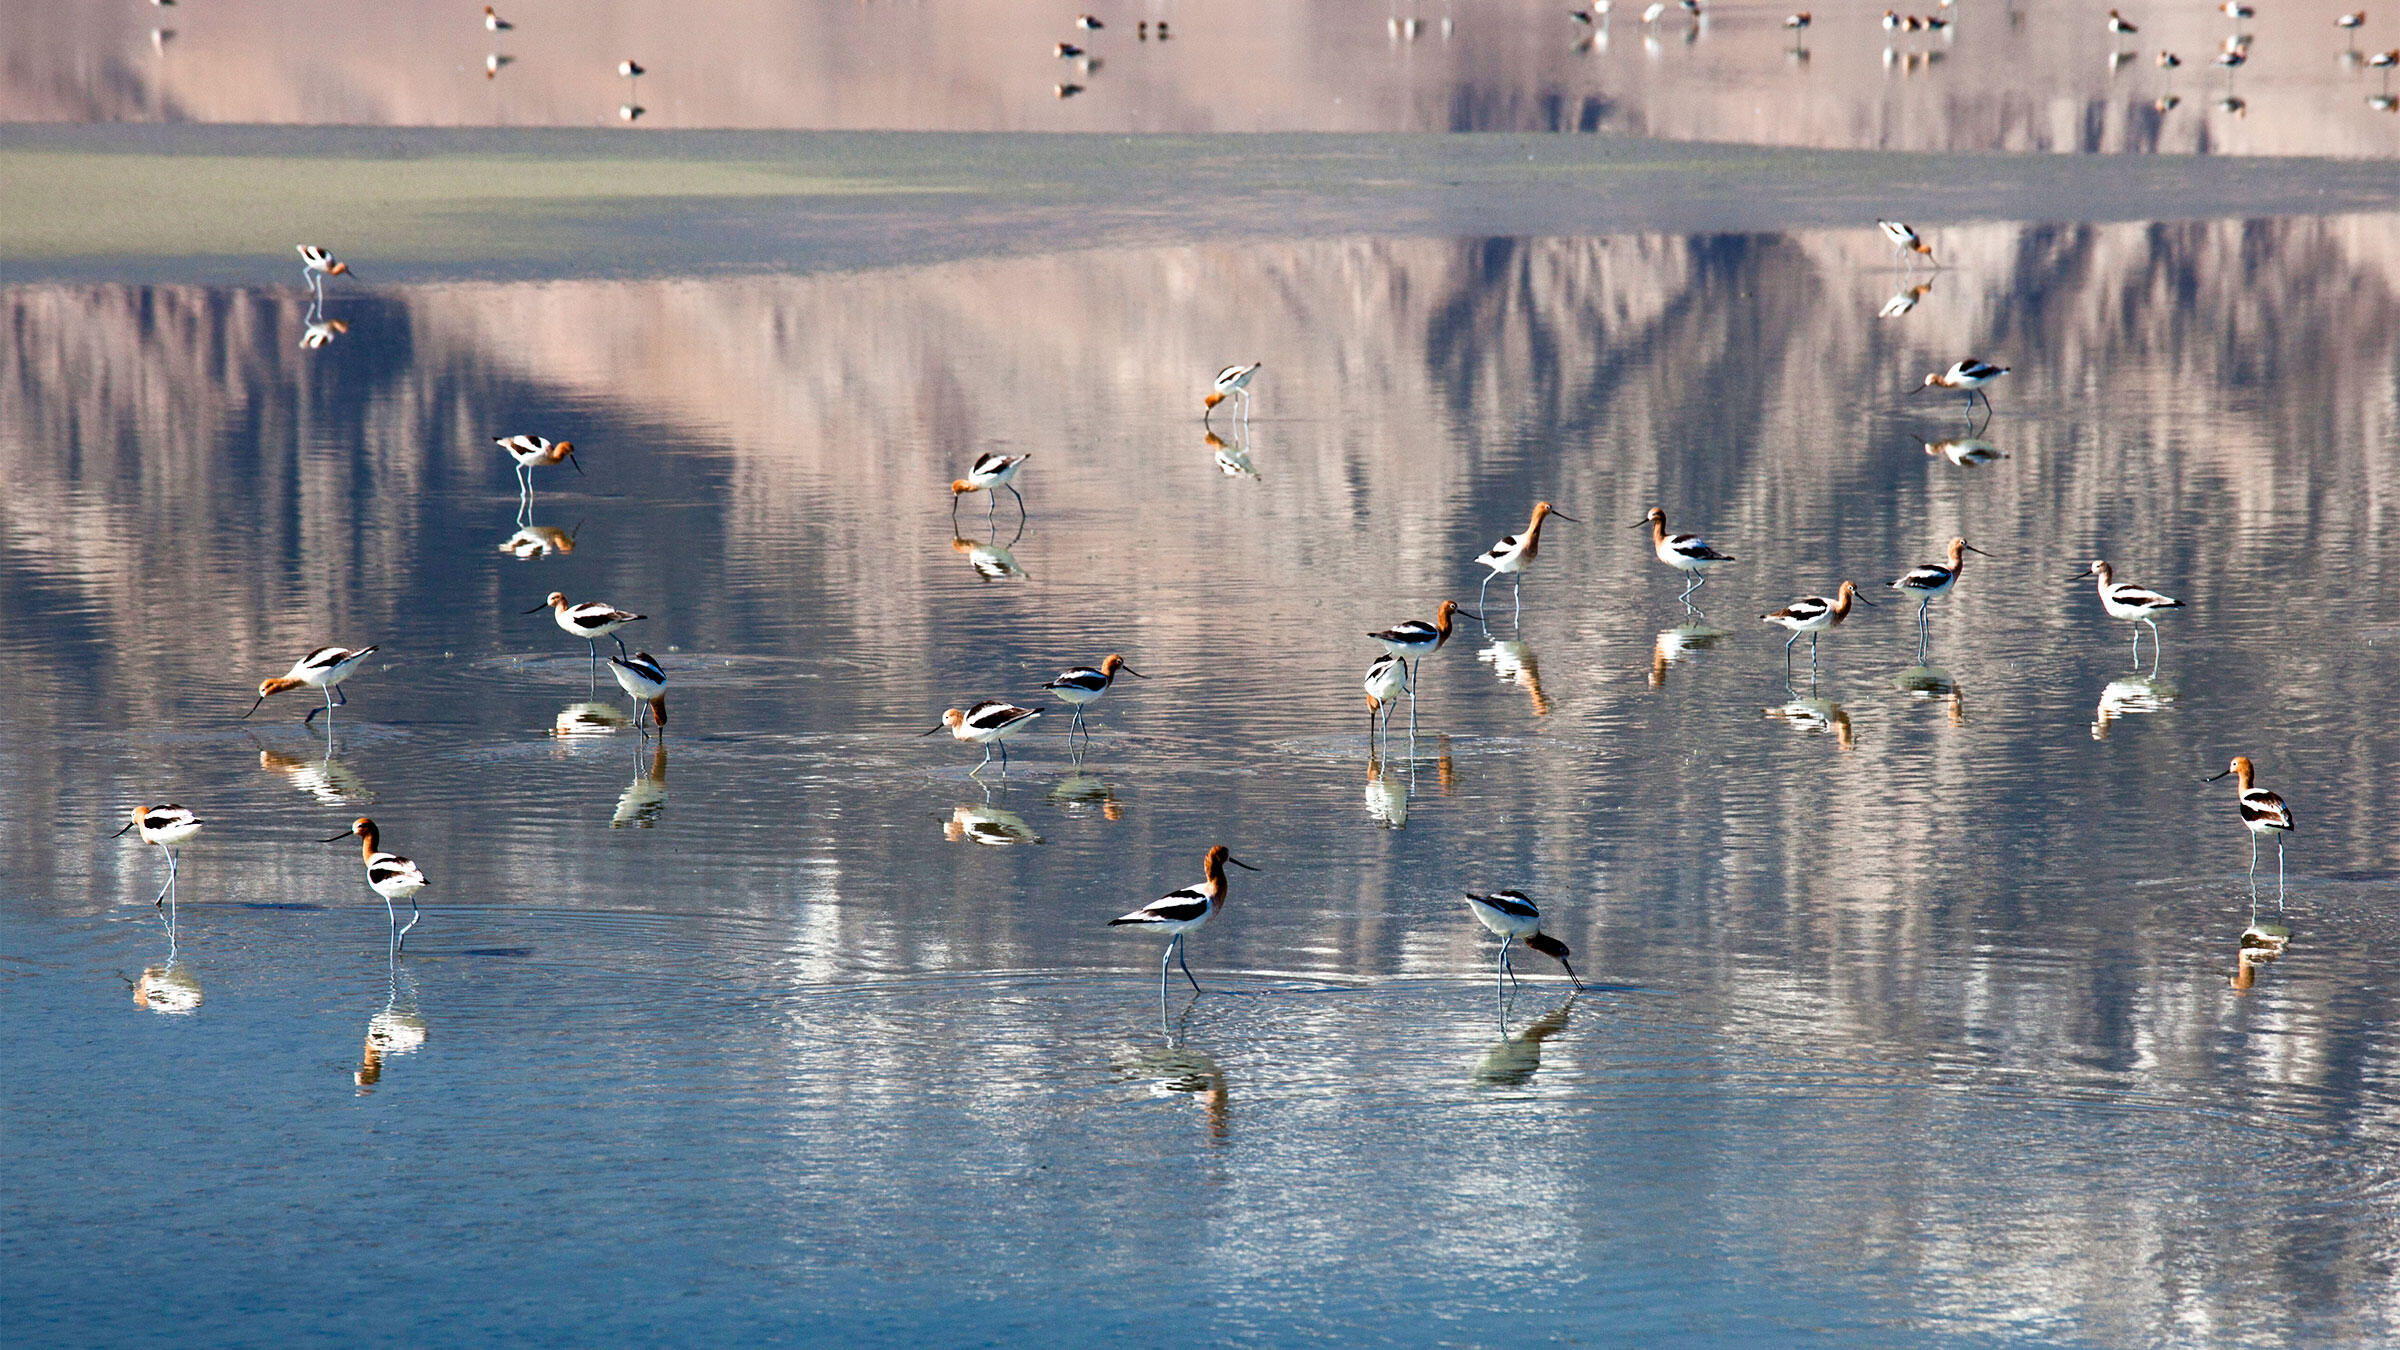 California's Owens Lake had all but disappeared by the 1990s. But once a multi-partner conservation effort got water routed back to the parched lakebed, birds like the American Avocet swiftly returned. Jim West/Alamy